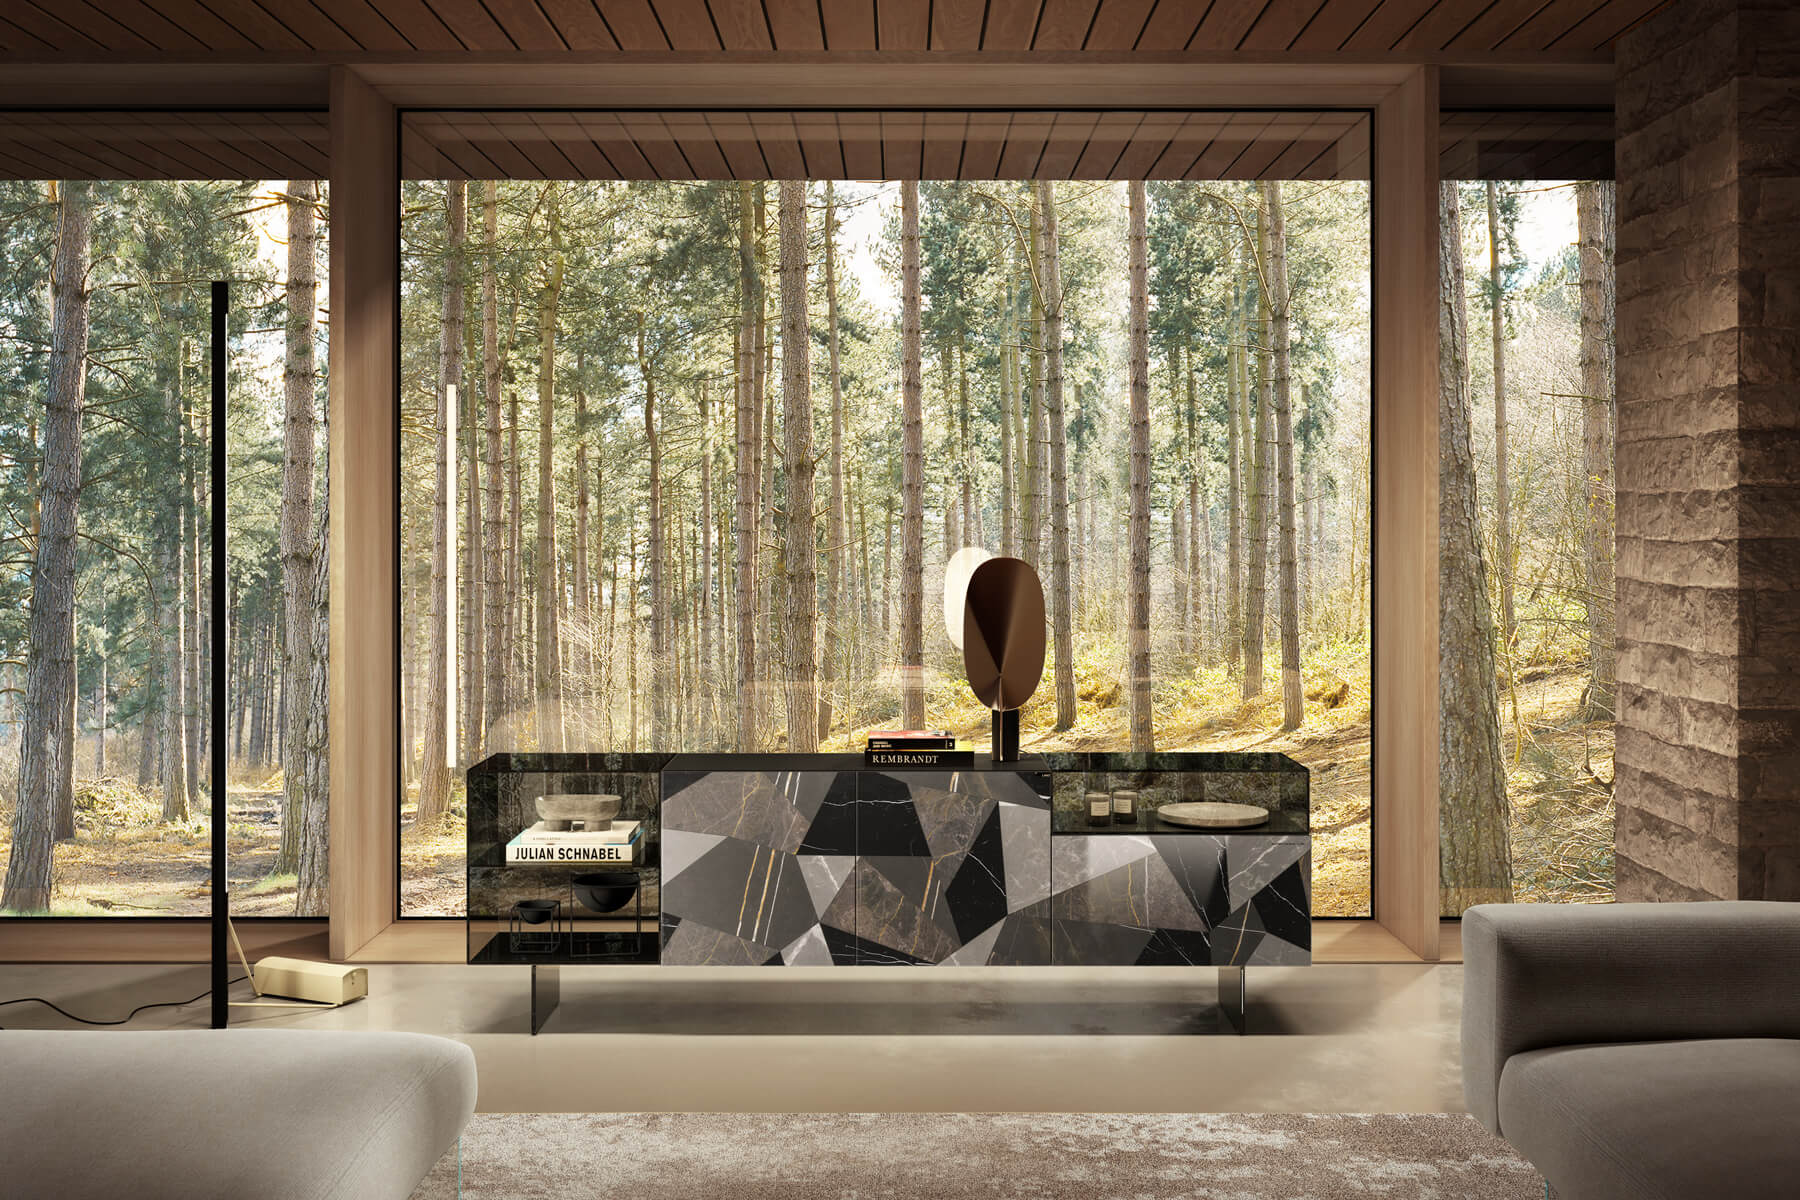 madia 36e8 glass supersalone limited edition